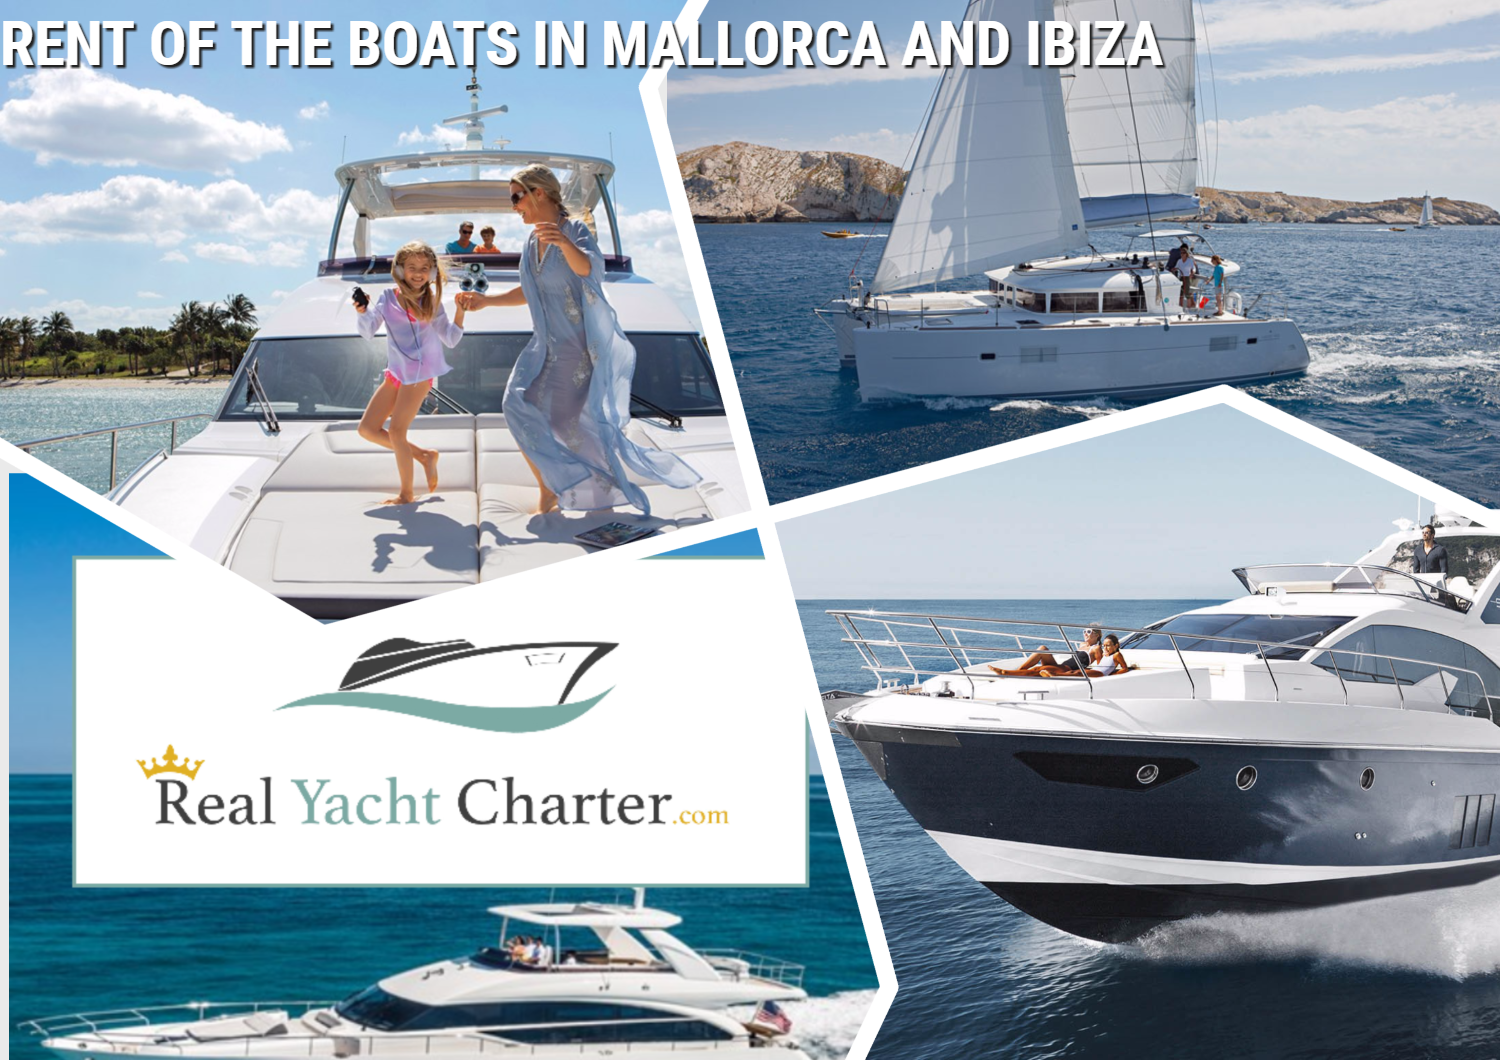 Variantes para Day Boat Charter in Mallorca